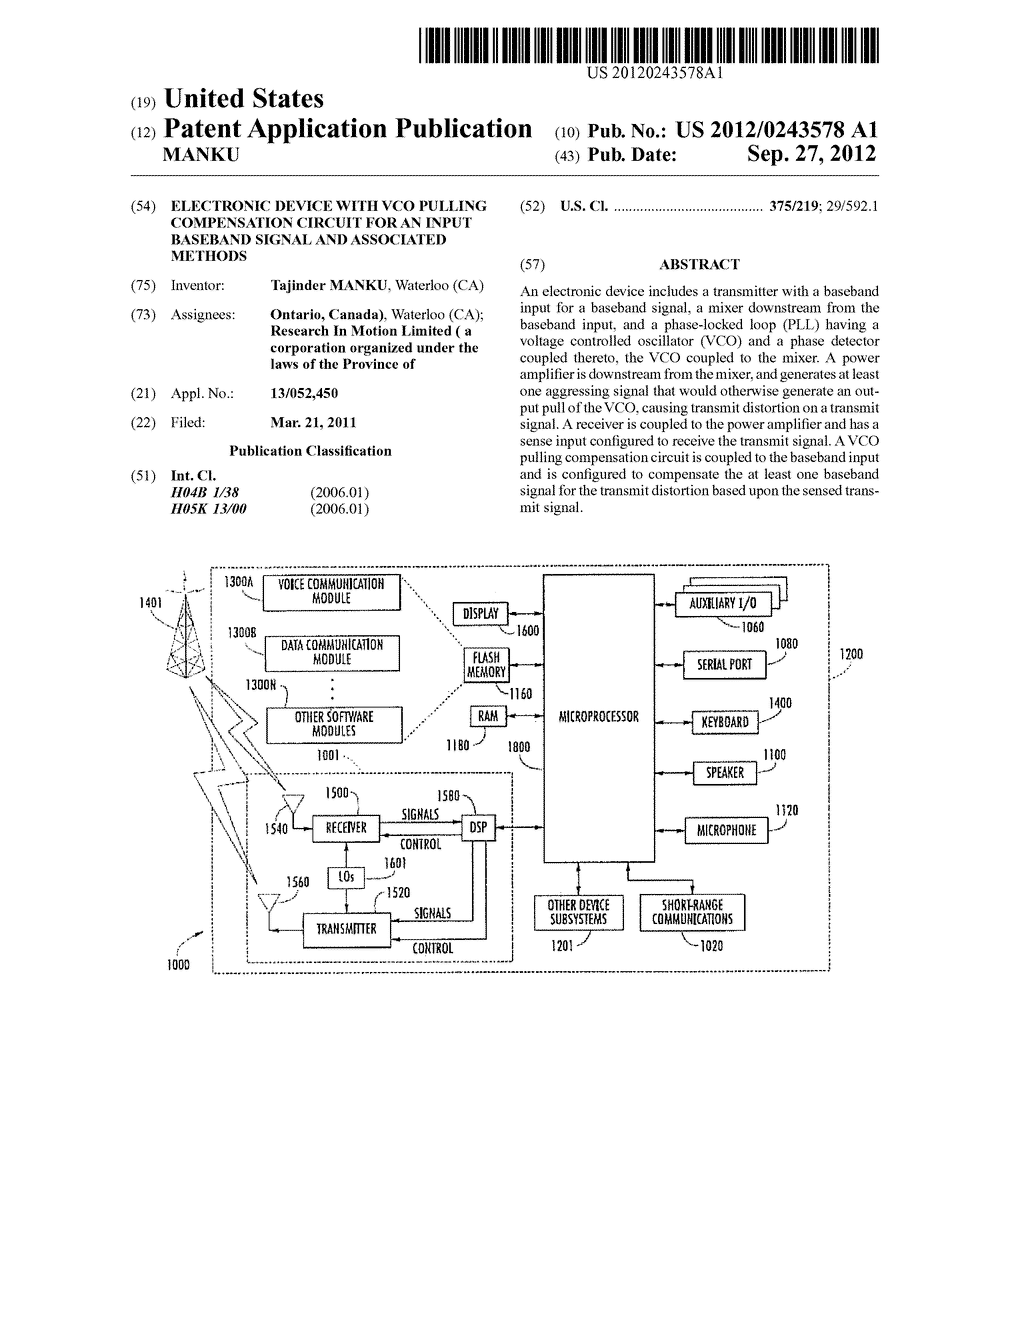 ELECTRONIC DEVICE WITH VCO PULLING COMPENSATION CIRCUIT FOR AN INPUT     BASEBAND SIGNAL AND ASSOCIATED METHODS - diagram, schematic, and image 01